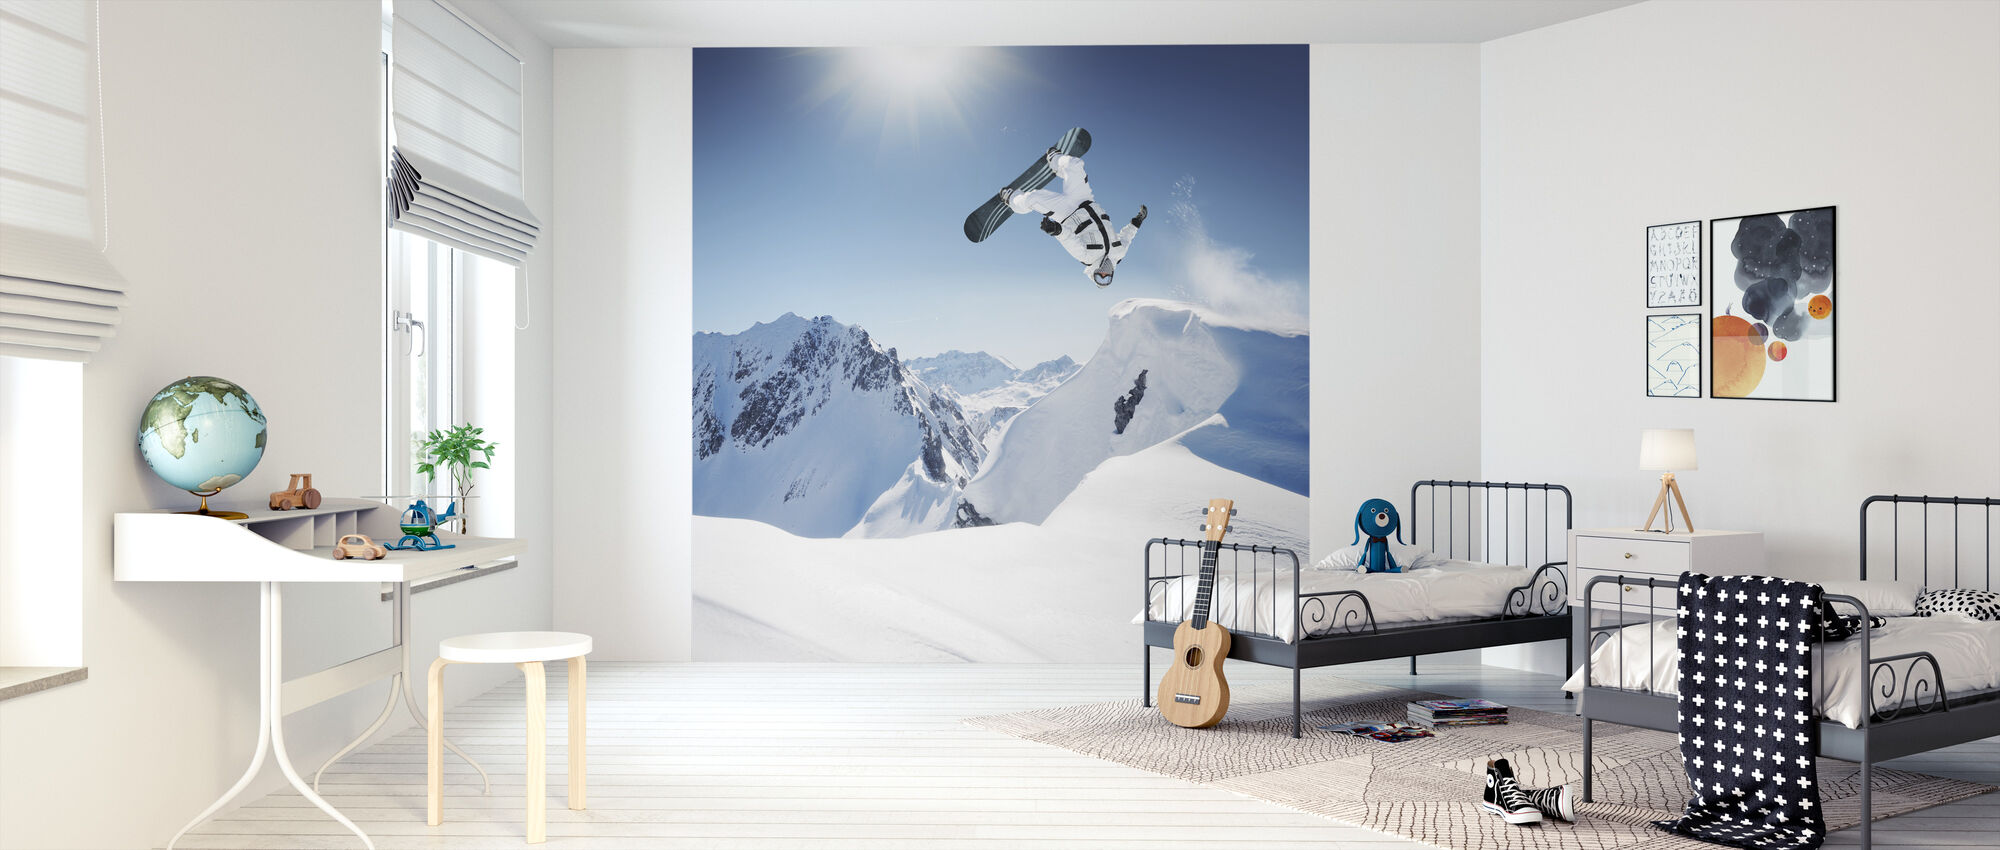 Snowboarder Backflip - Wallpaper - Kids Room